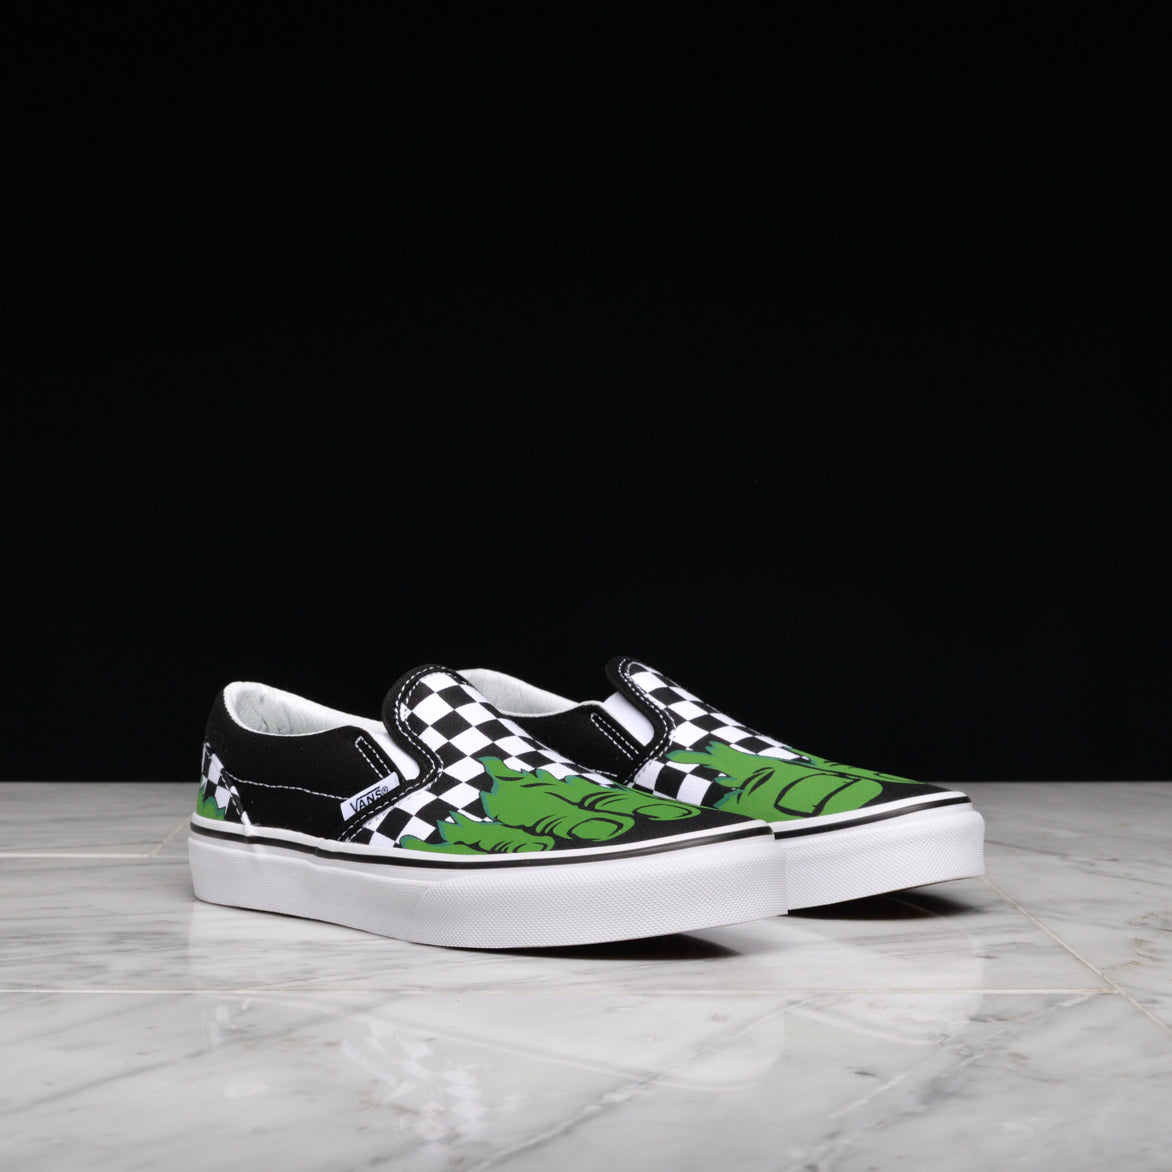 ... MARVEL x VANS CLASSIC SLIP-ON (KIDS) - INCREDIBLE HULK ... b537f5feb